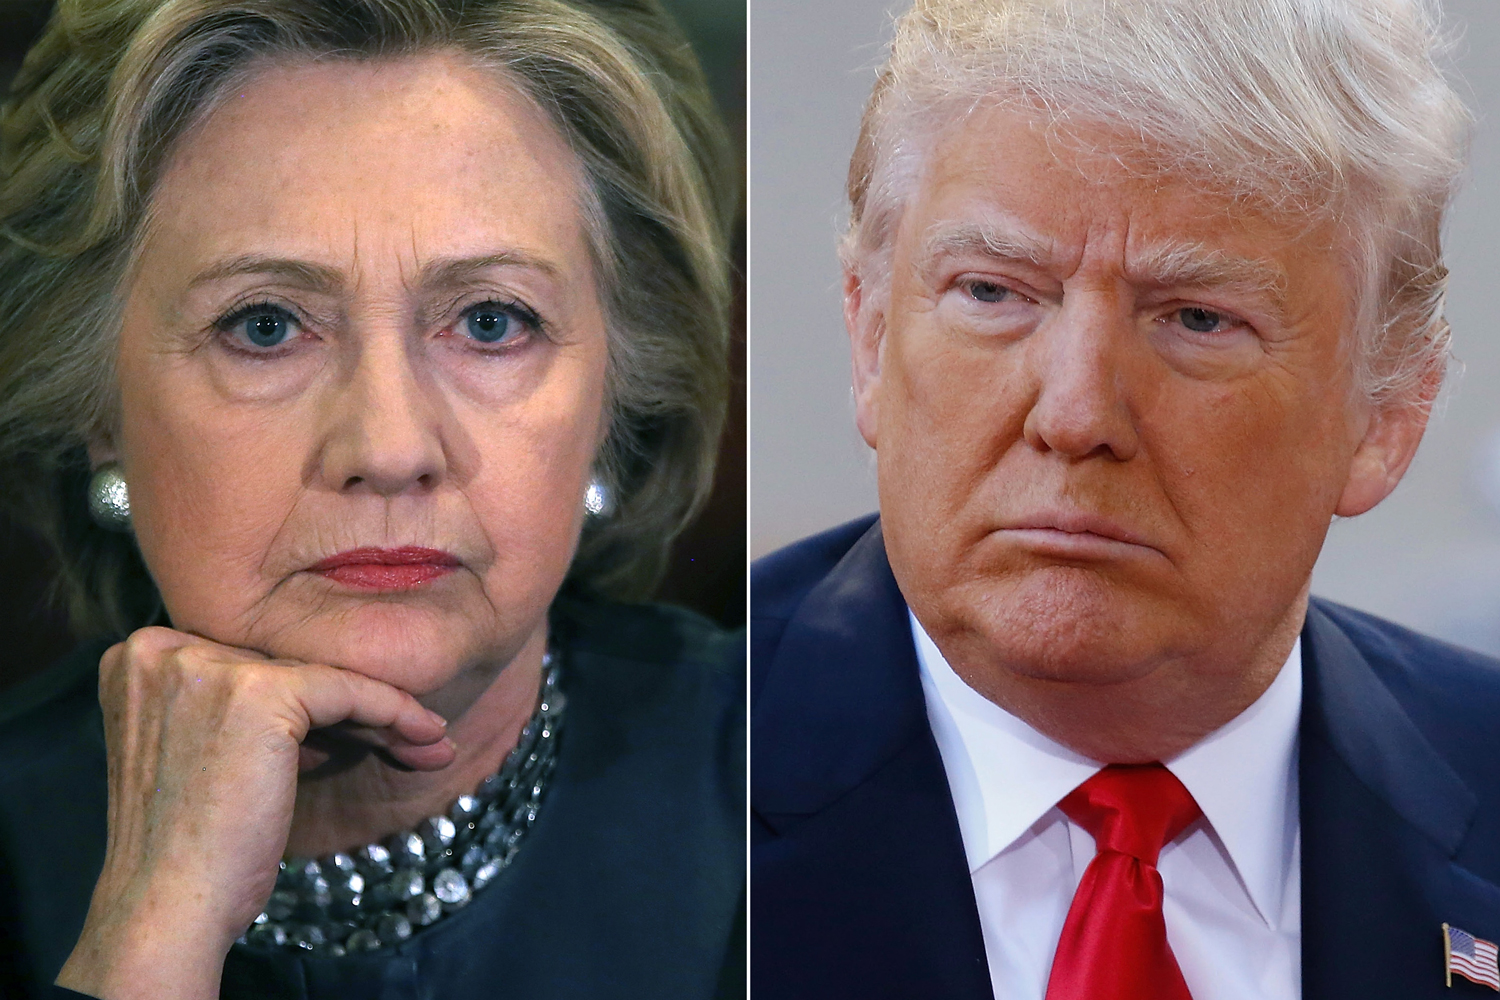 Hillary Clinton in New Haven, Connecticut on April 23, 2016 (R); Donald Trump in New York City, on April 21, 2016.